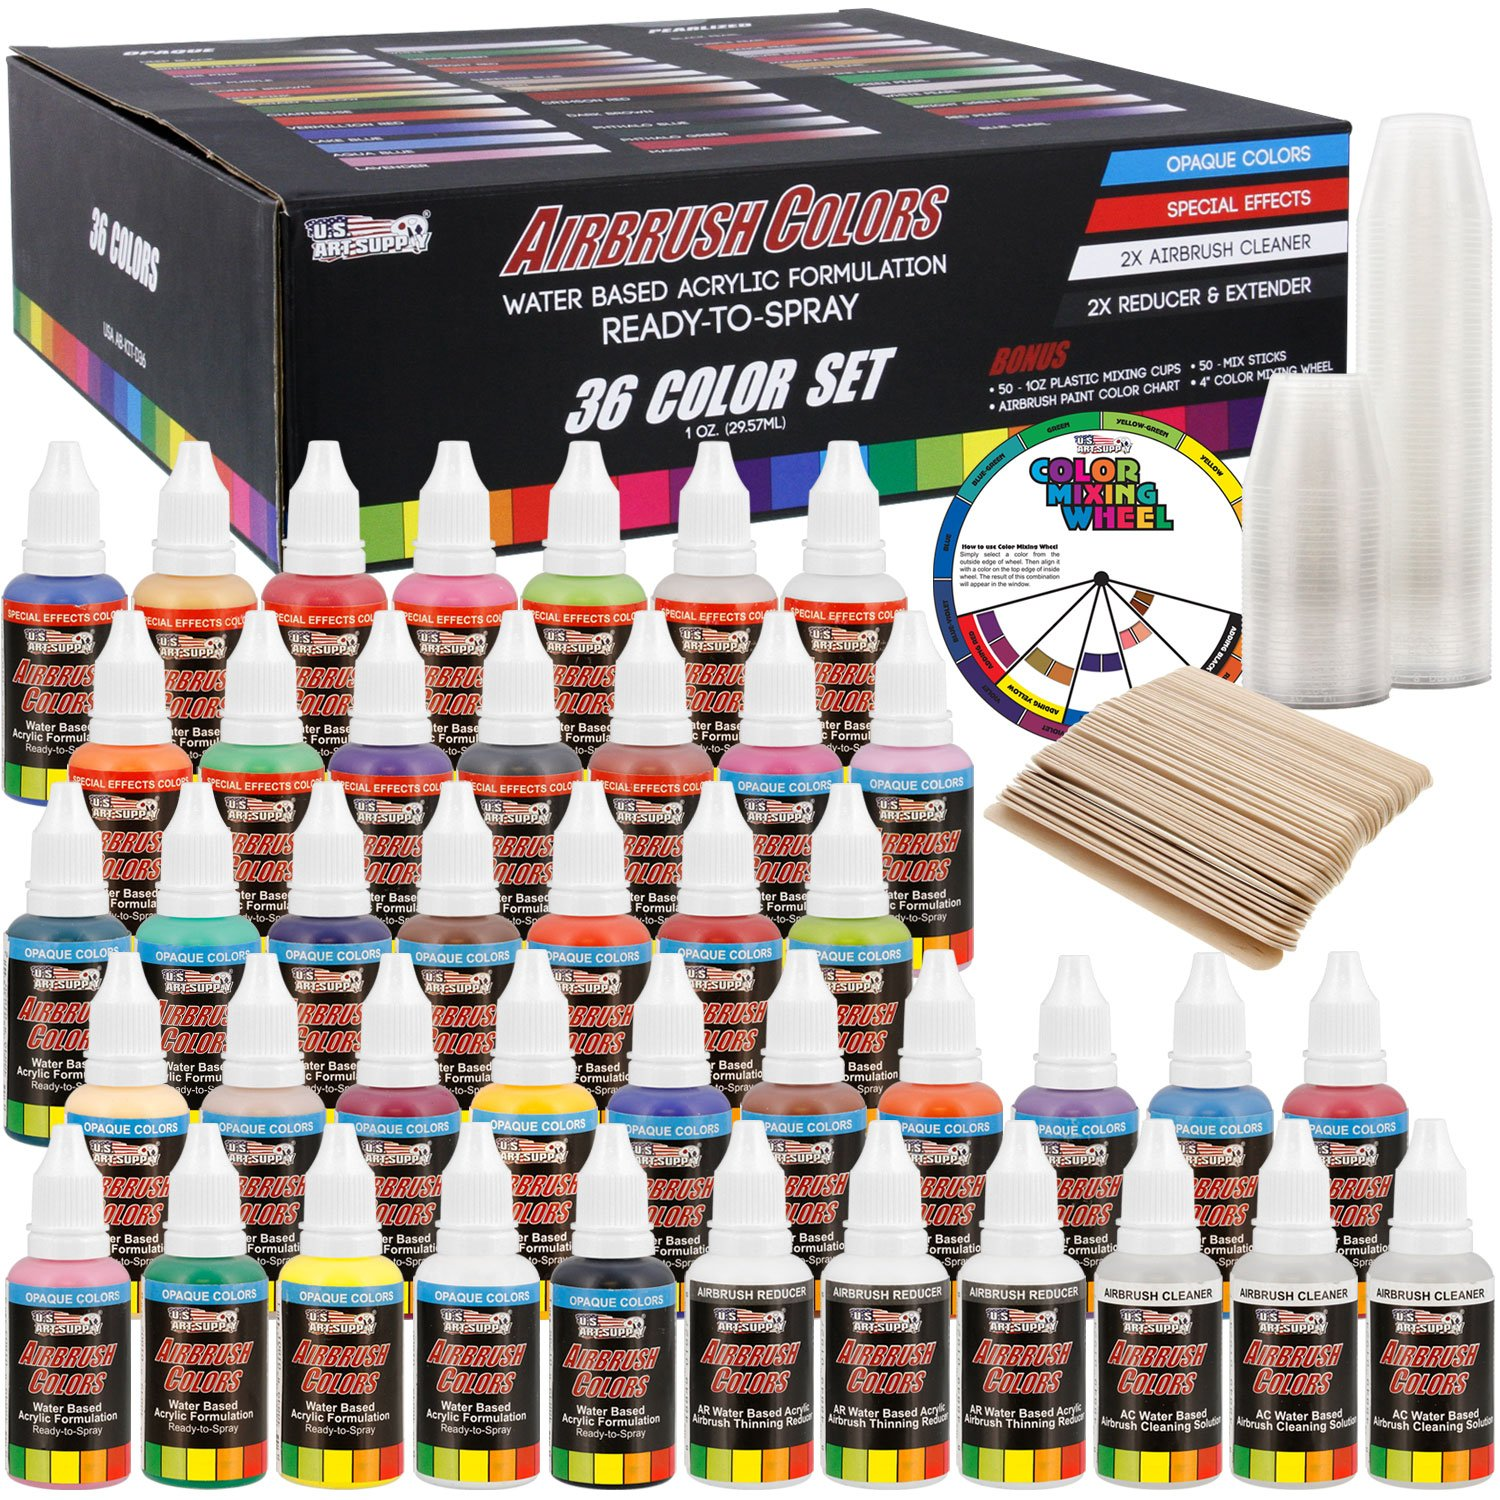 U.S. Art Supply 36 Color Deluxe Acrylic Airbrush, Leather & Shoe Paint Set with Cleaner, Thinner, 50-Plastic Mixing Cups, 50-Wooden Mix Sticks and Color Mixing Wheel by US Art Supply (Image #1)